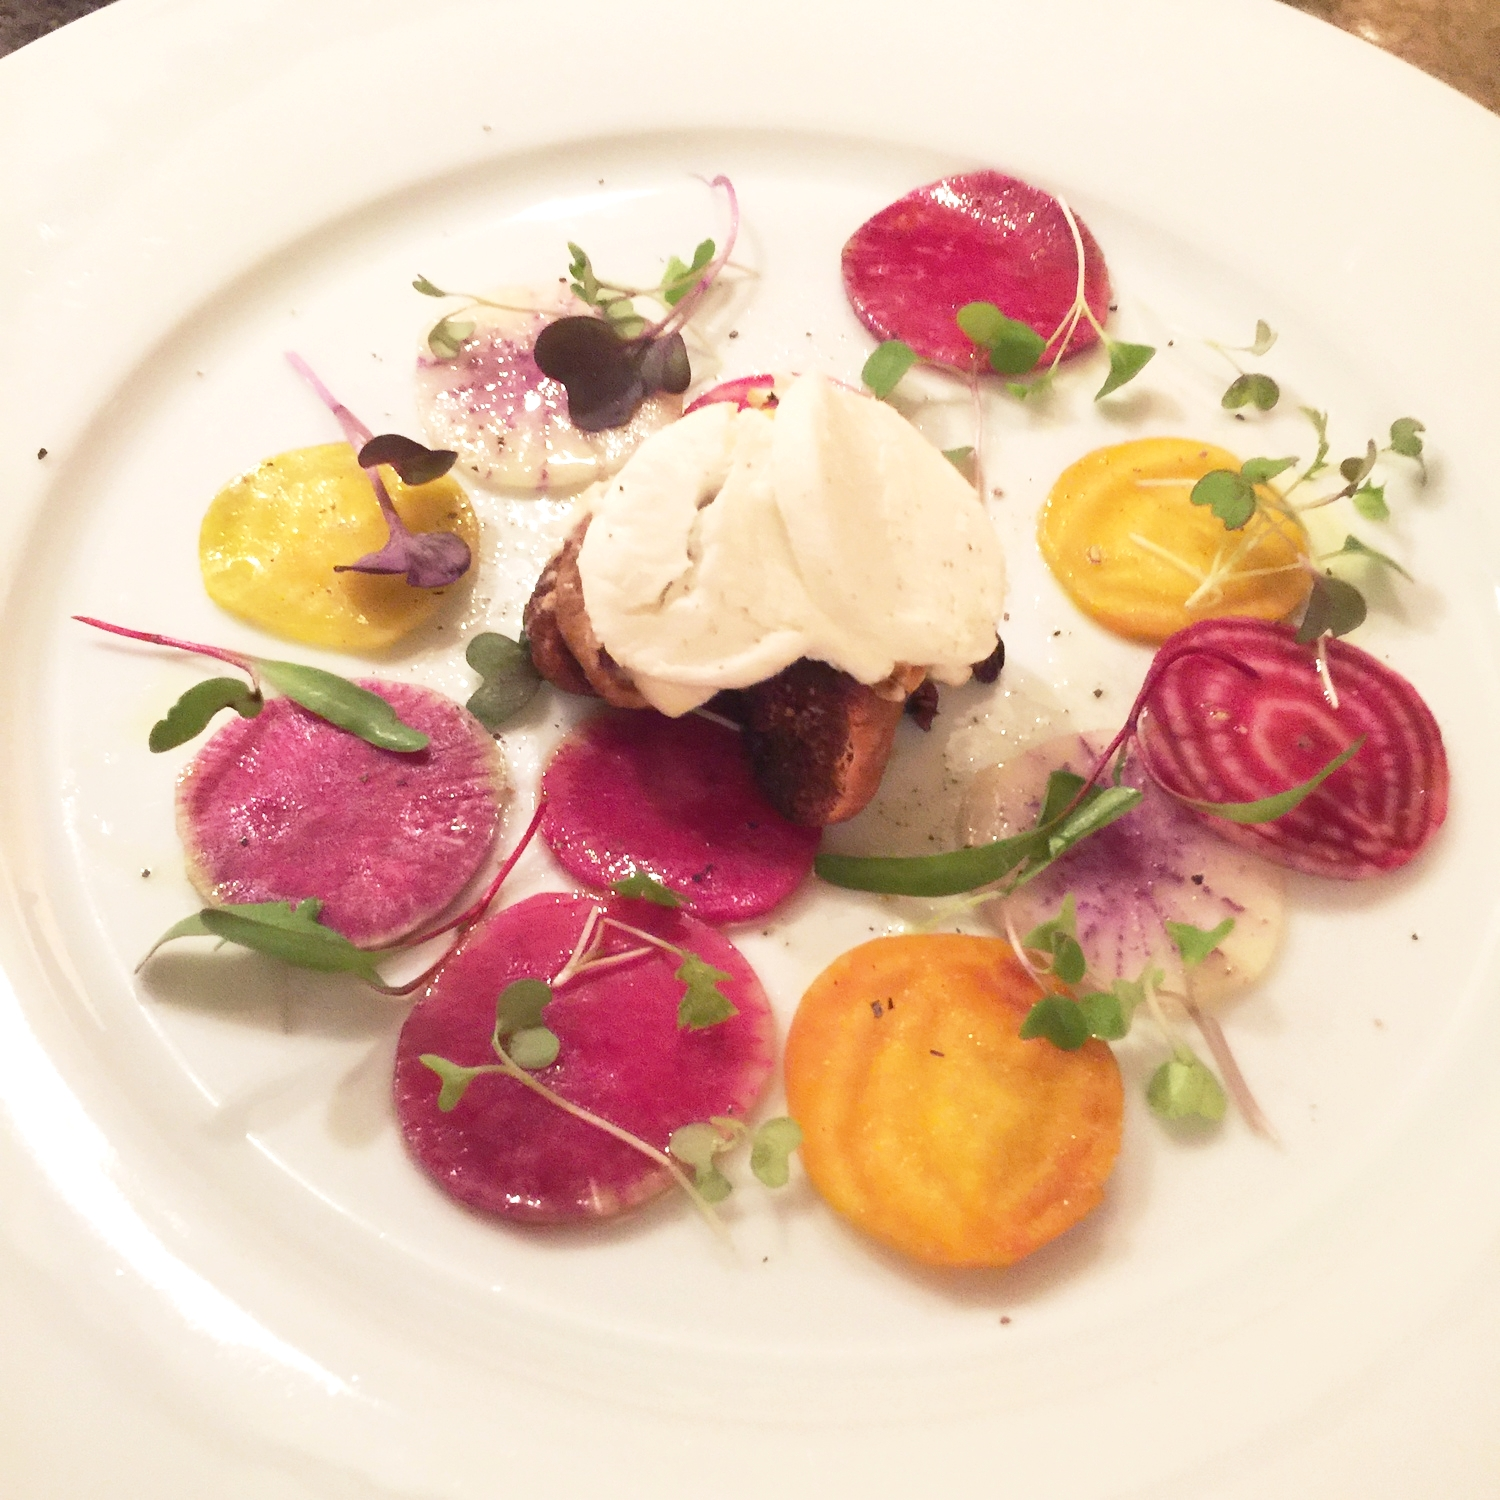 goat-cheese-and-baked-fig-with-winter-root-vegetable-salad